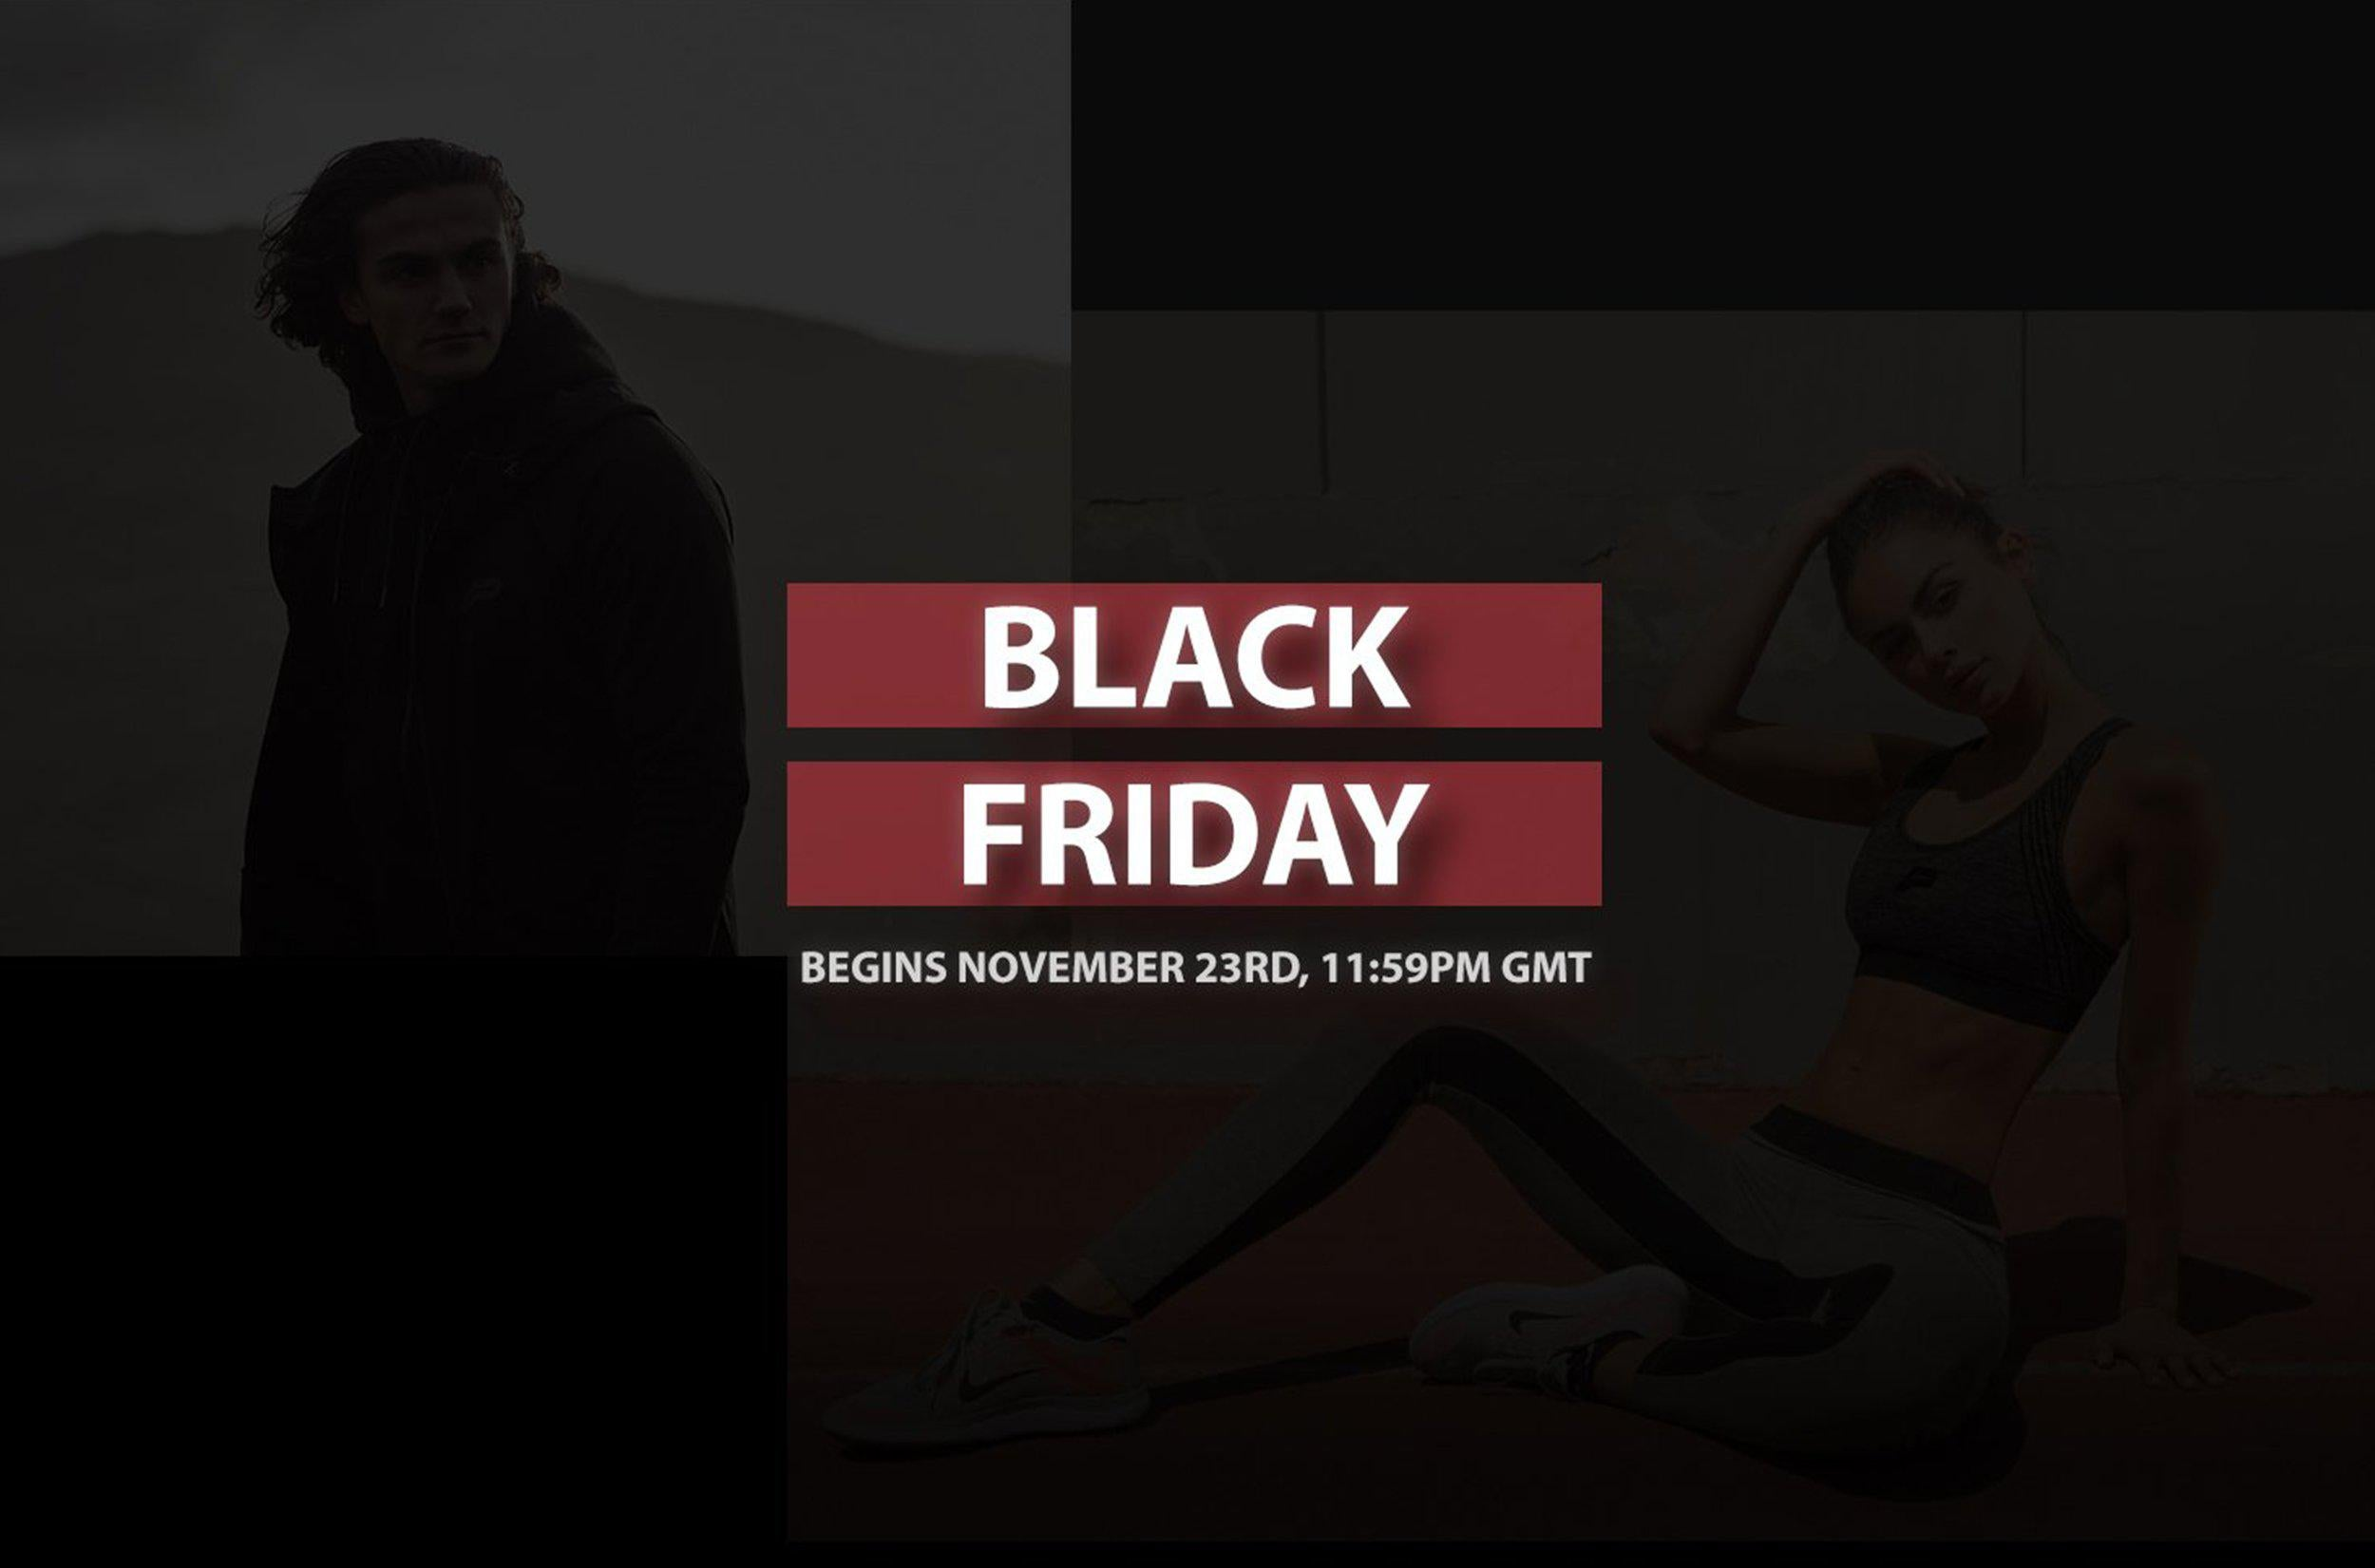 Black Friday 2017: The Details